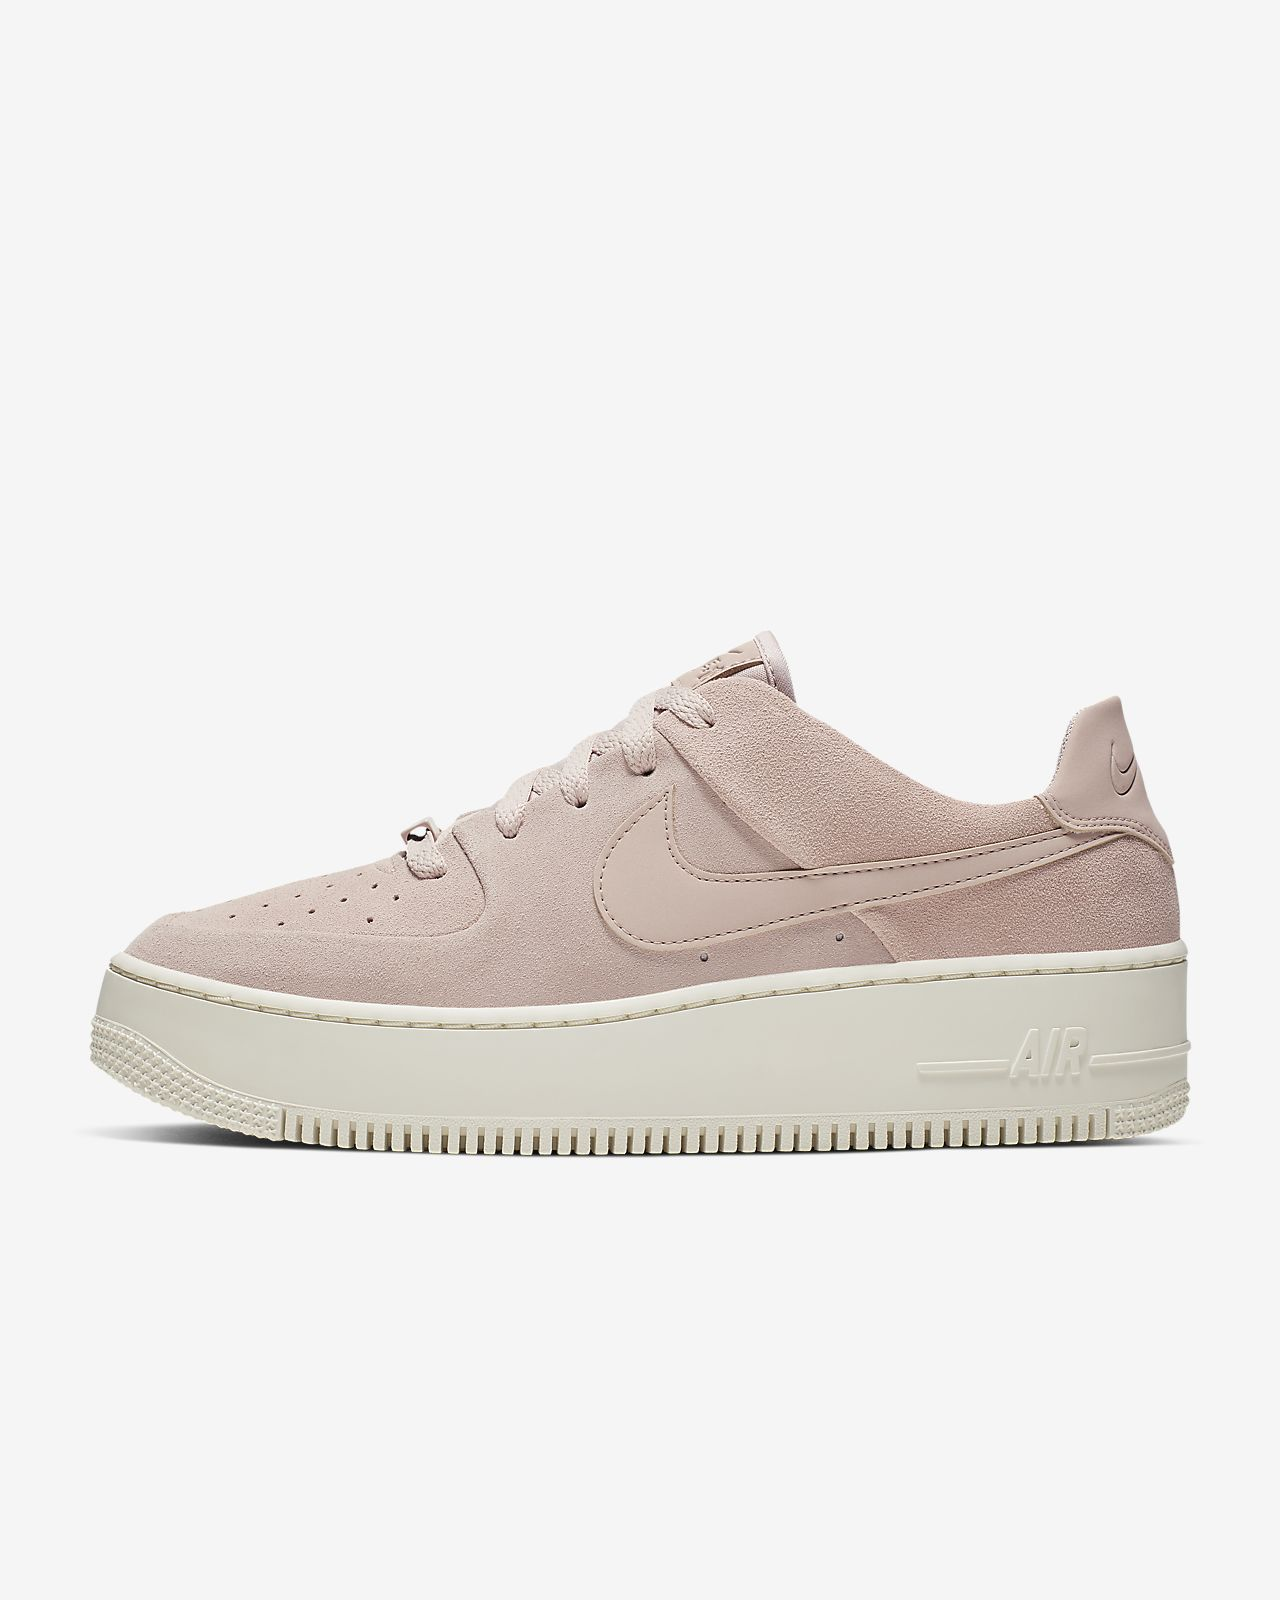 pretty nice c33f9 05c2e ... Calzado para mujer Nike Air Force 1 Sage Low